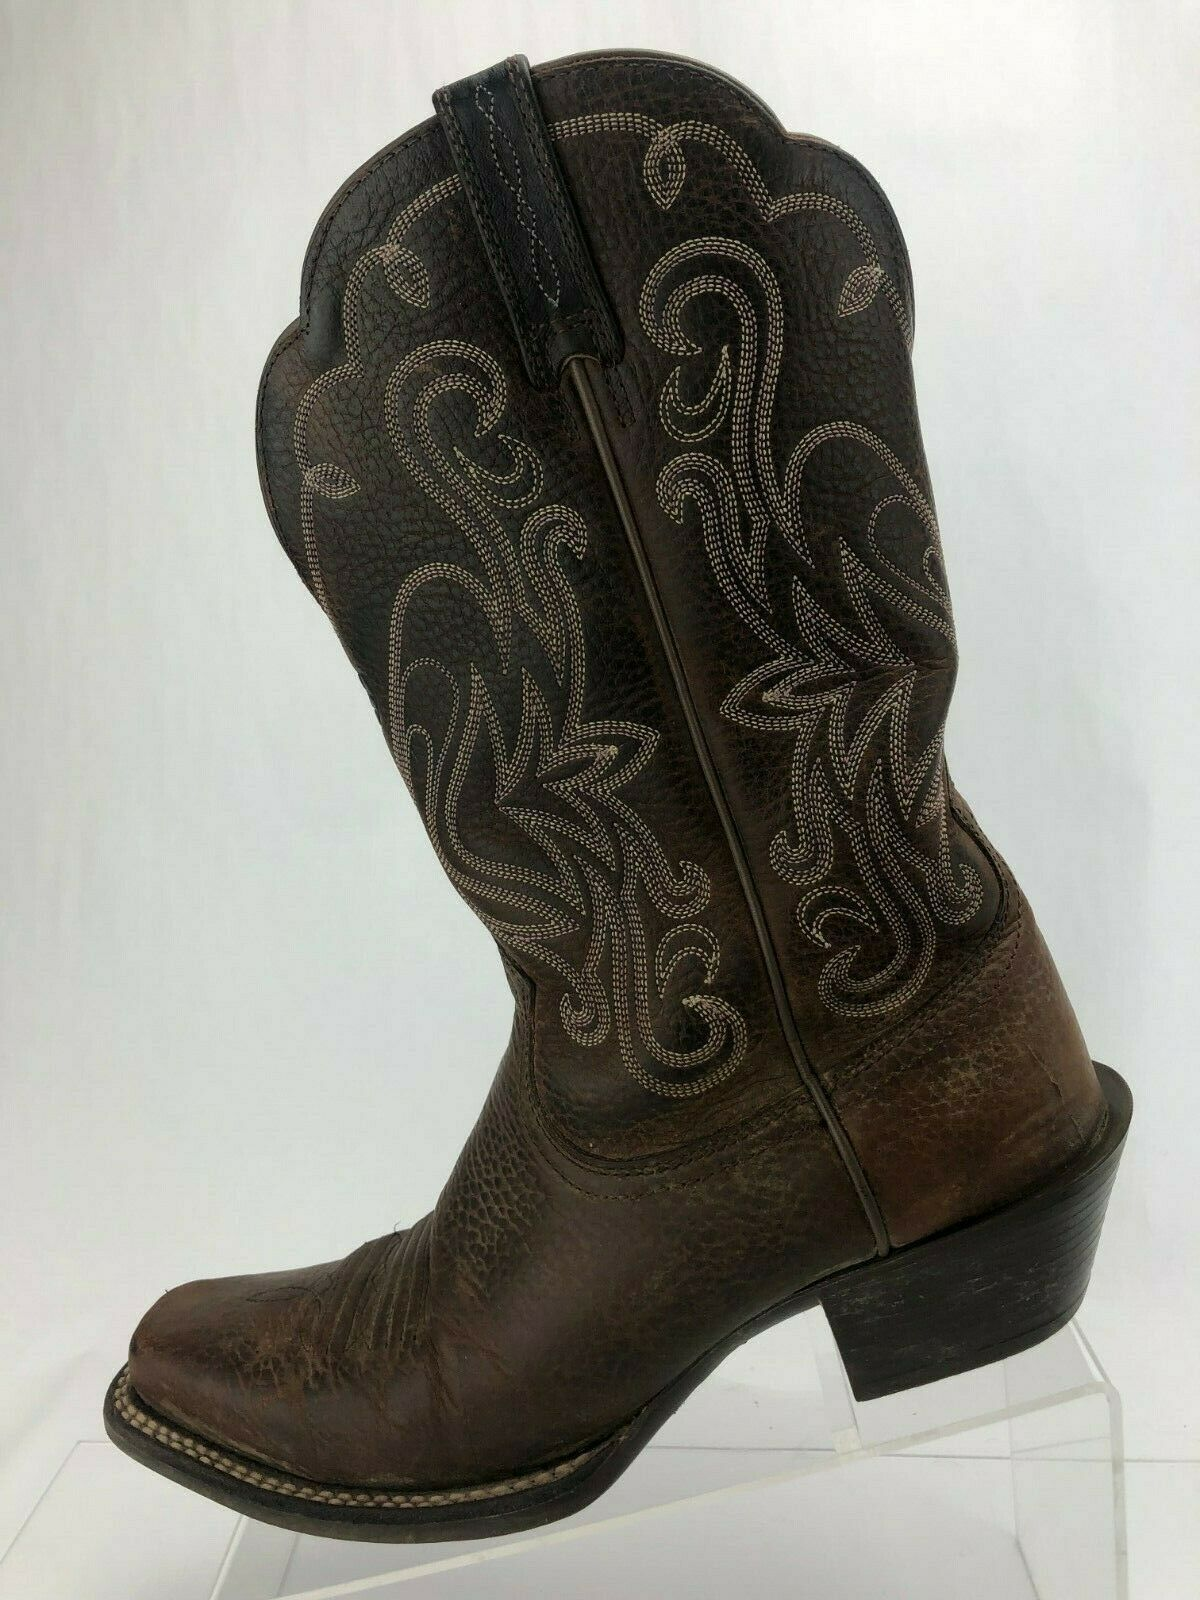 Ariat Legend Western Boots Rowdy Cowgirl Brown Leather Cowboy Riding Womens 8.5B